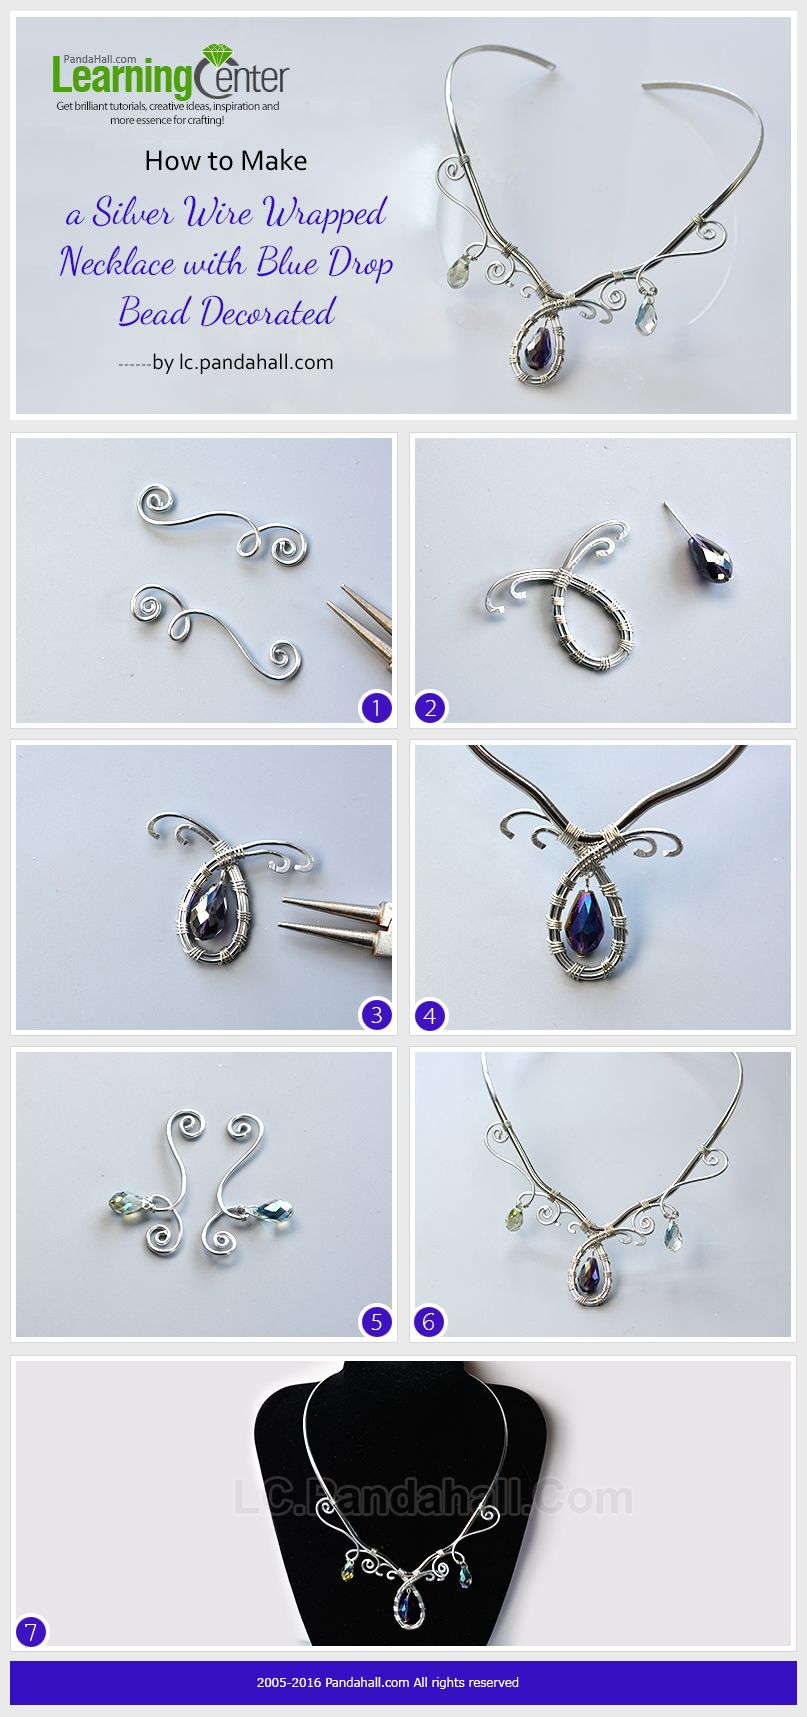 How-to-Make-a-Silver-Wire-Wrapped-Necklace-with-Blue-Drop-Bead ...